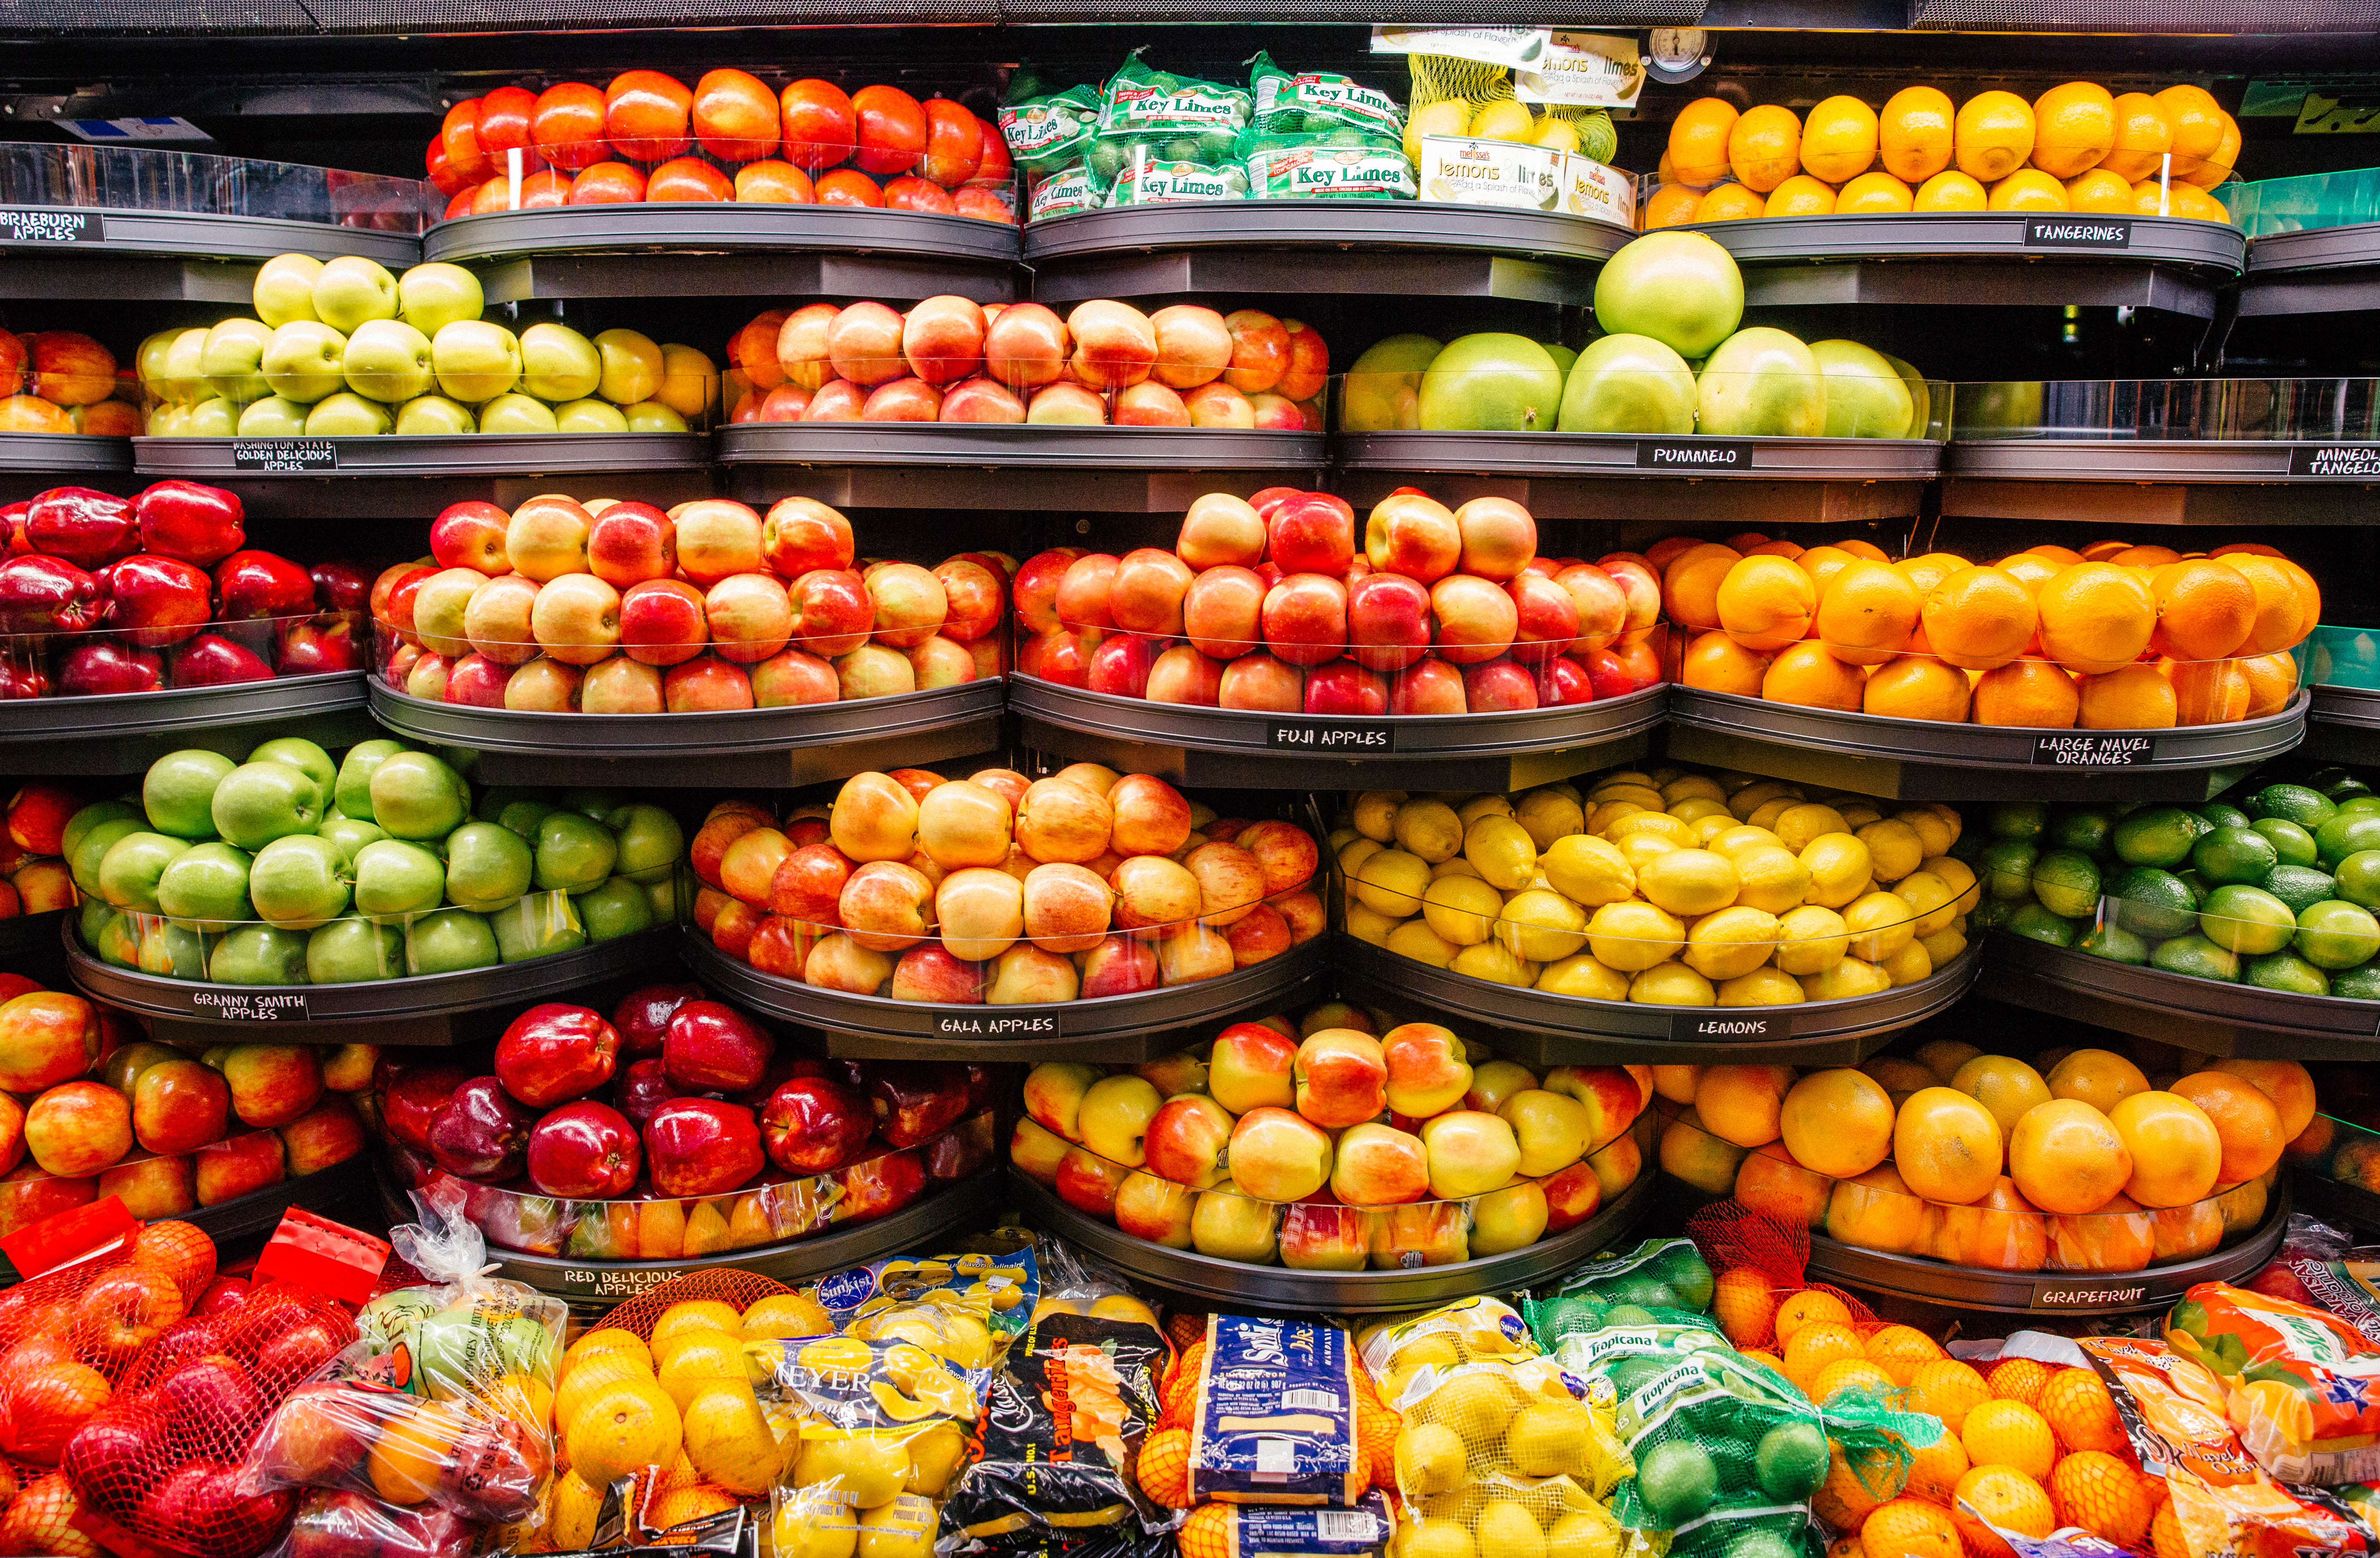 Rouses Roots Are In The Produce Industry So Its No Surprise Section Is Elevated Beyond Norm Baskets Filled With Colorful Fruits And